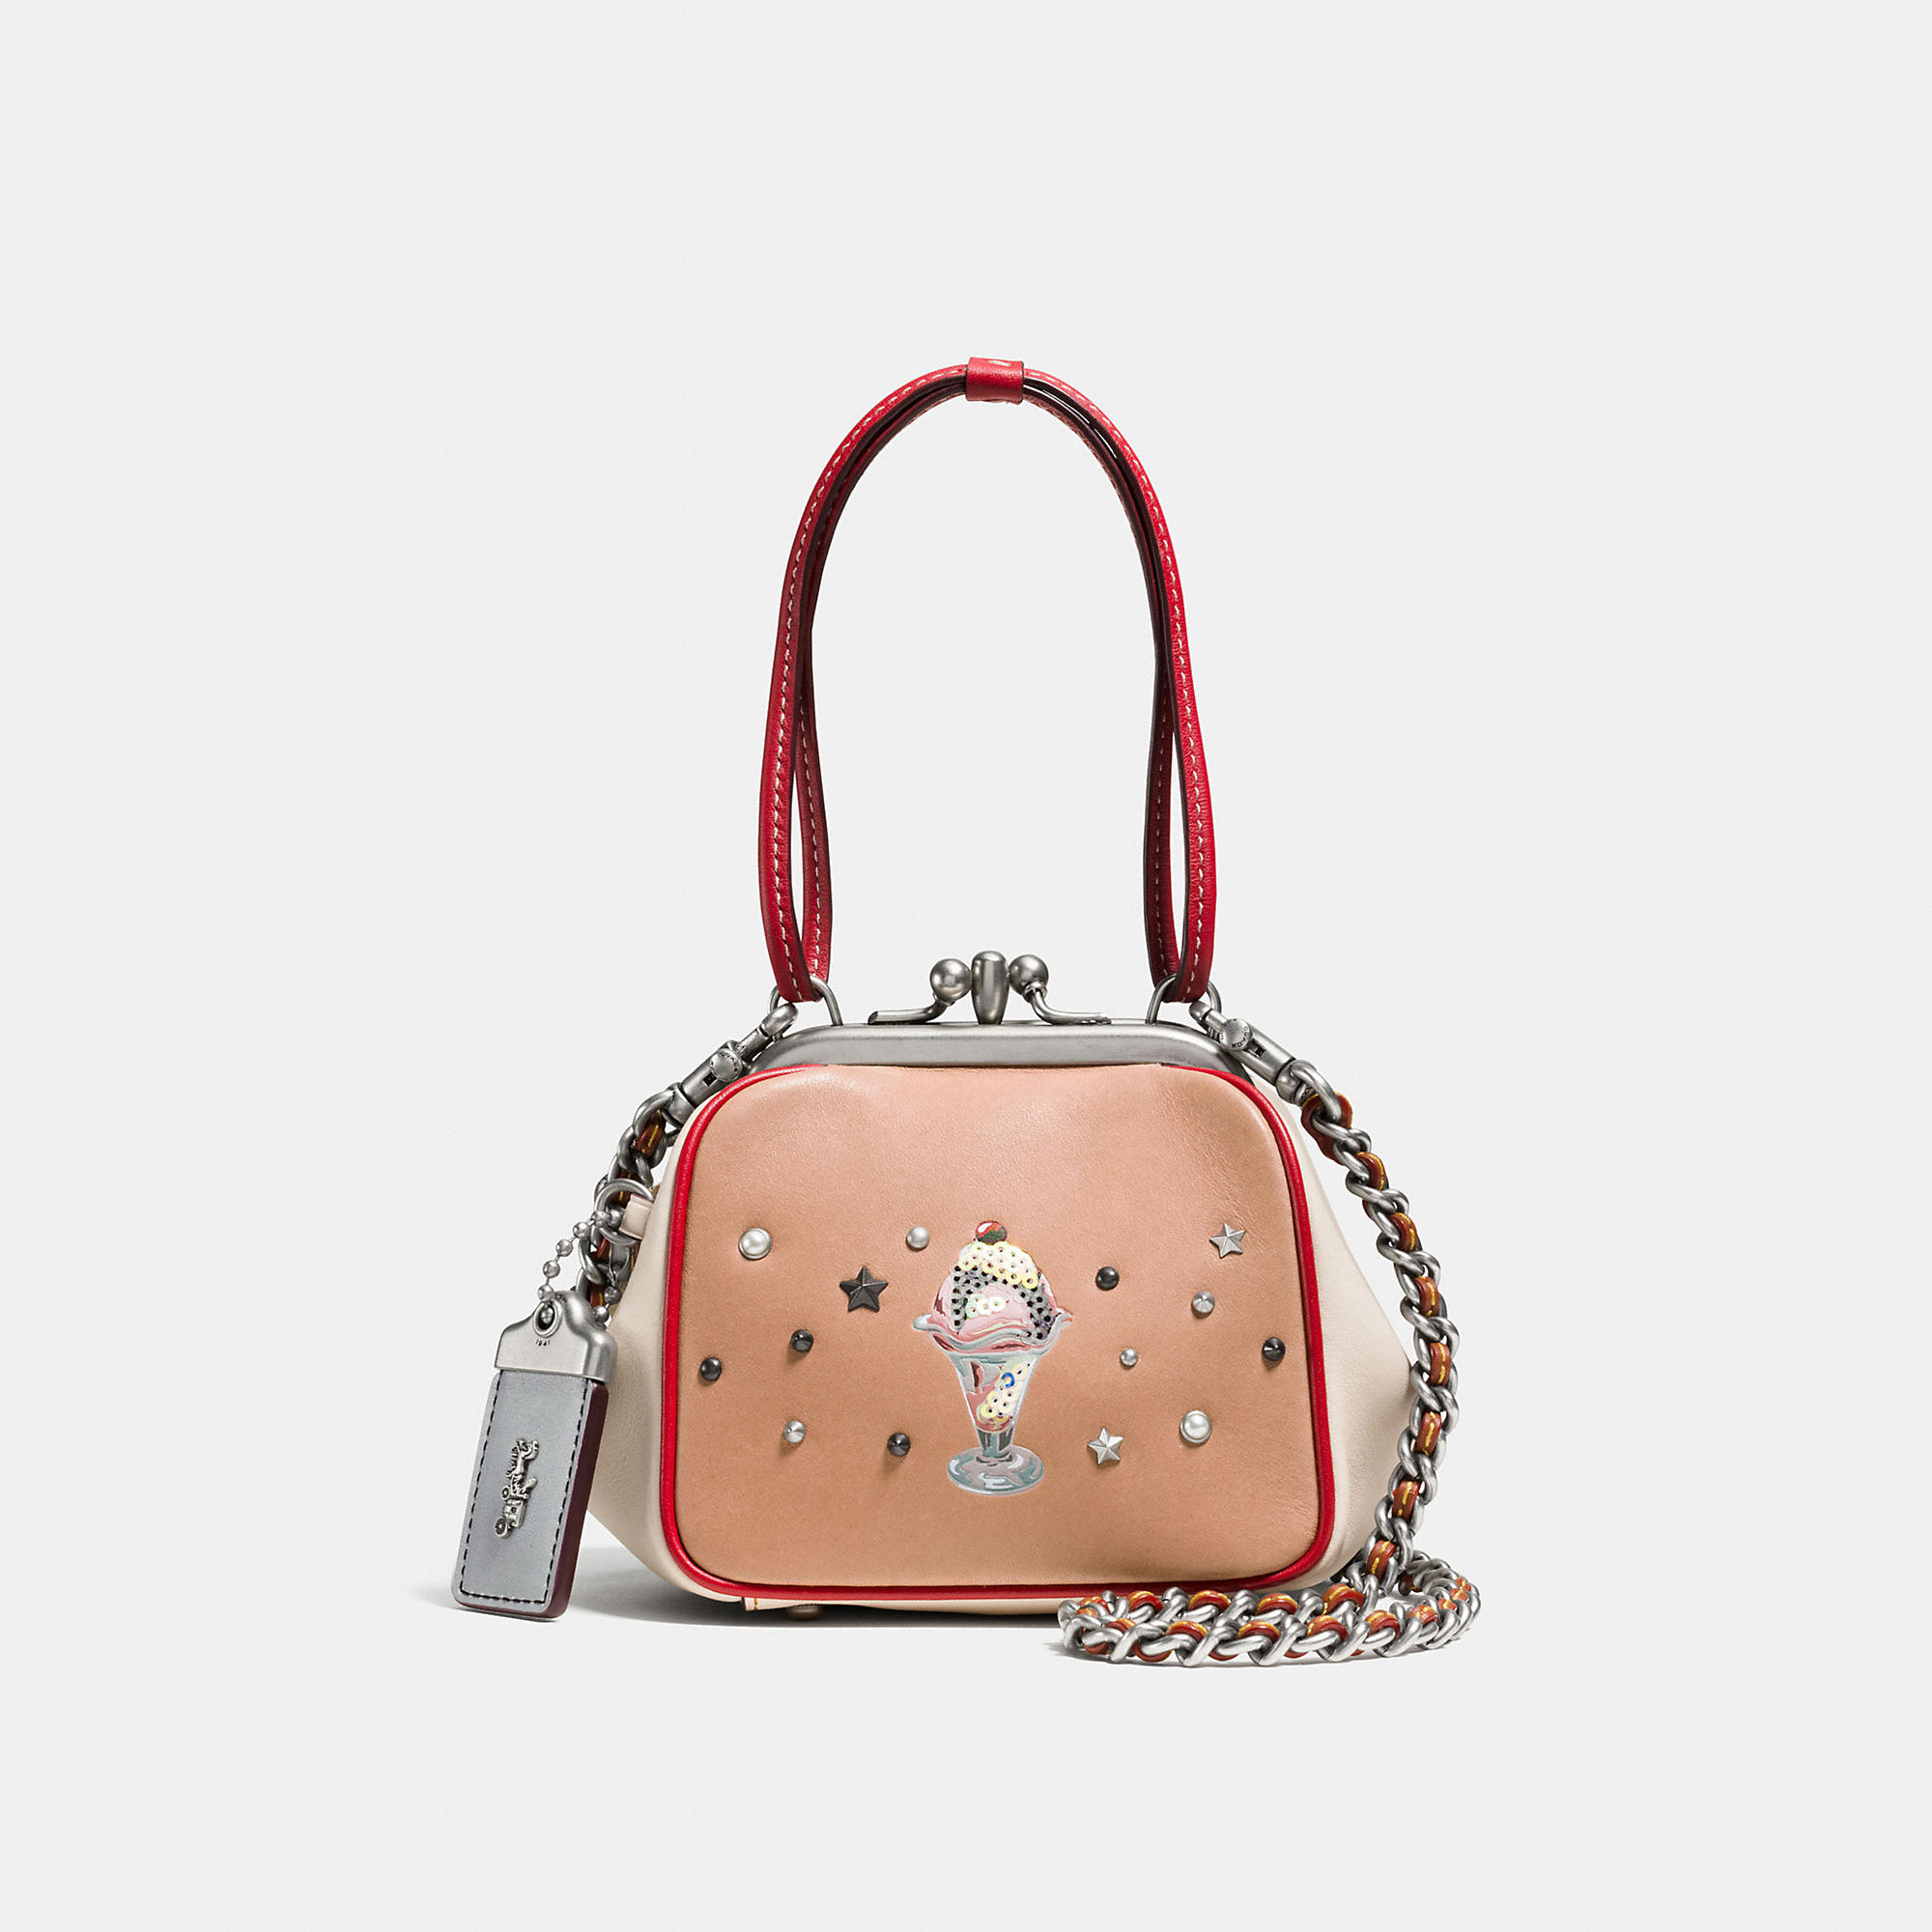 Coach Kisslock Frame Bag 23 In Glovetanned Leather With Sundae Embellishment